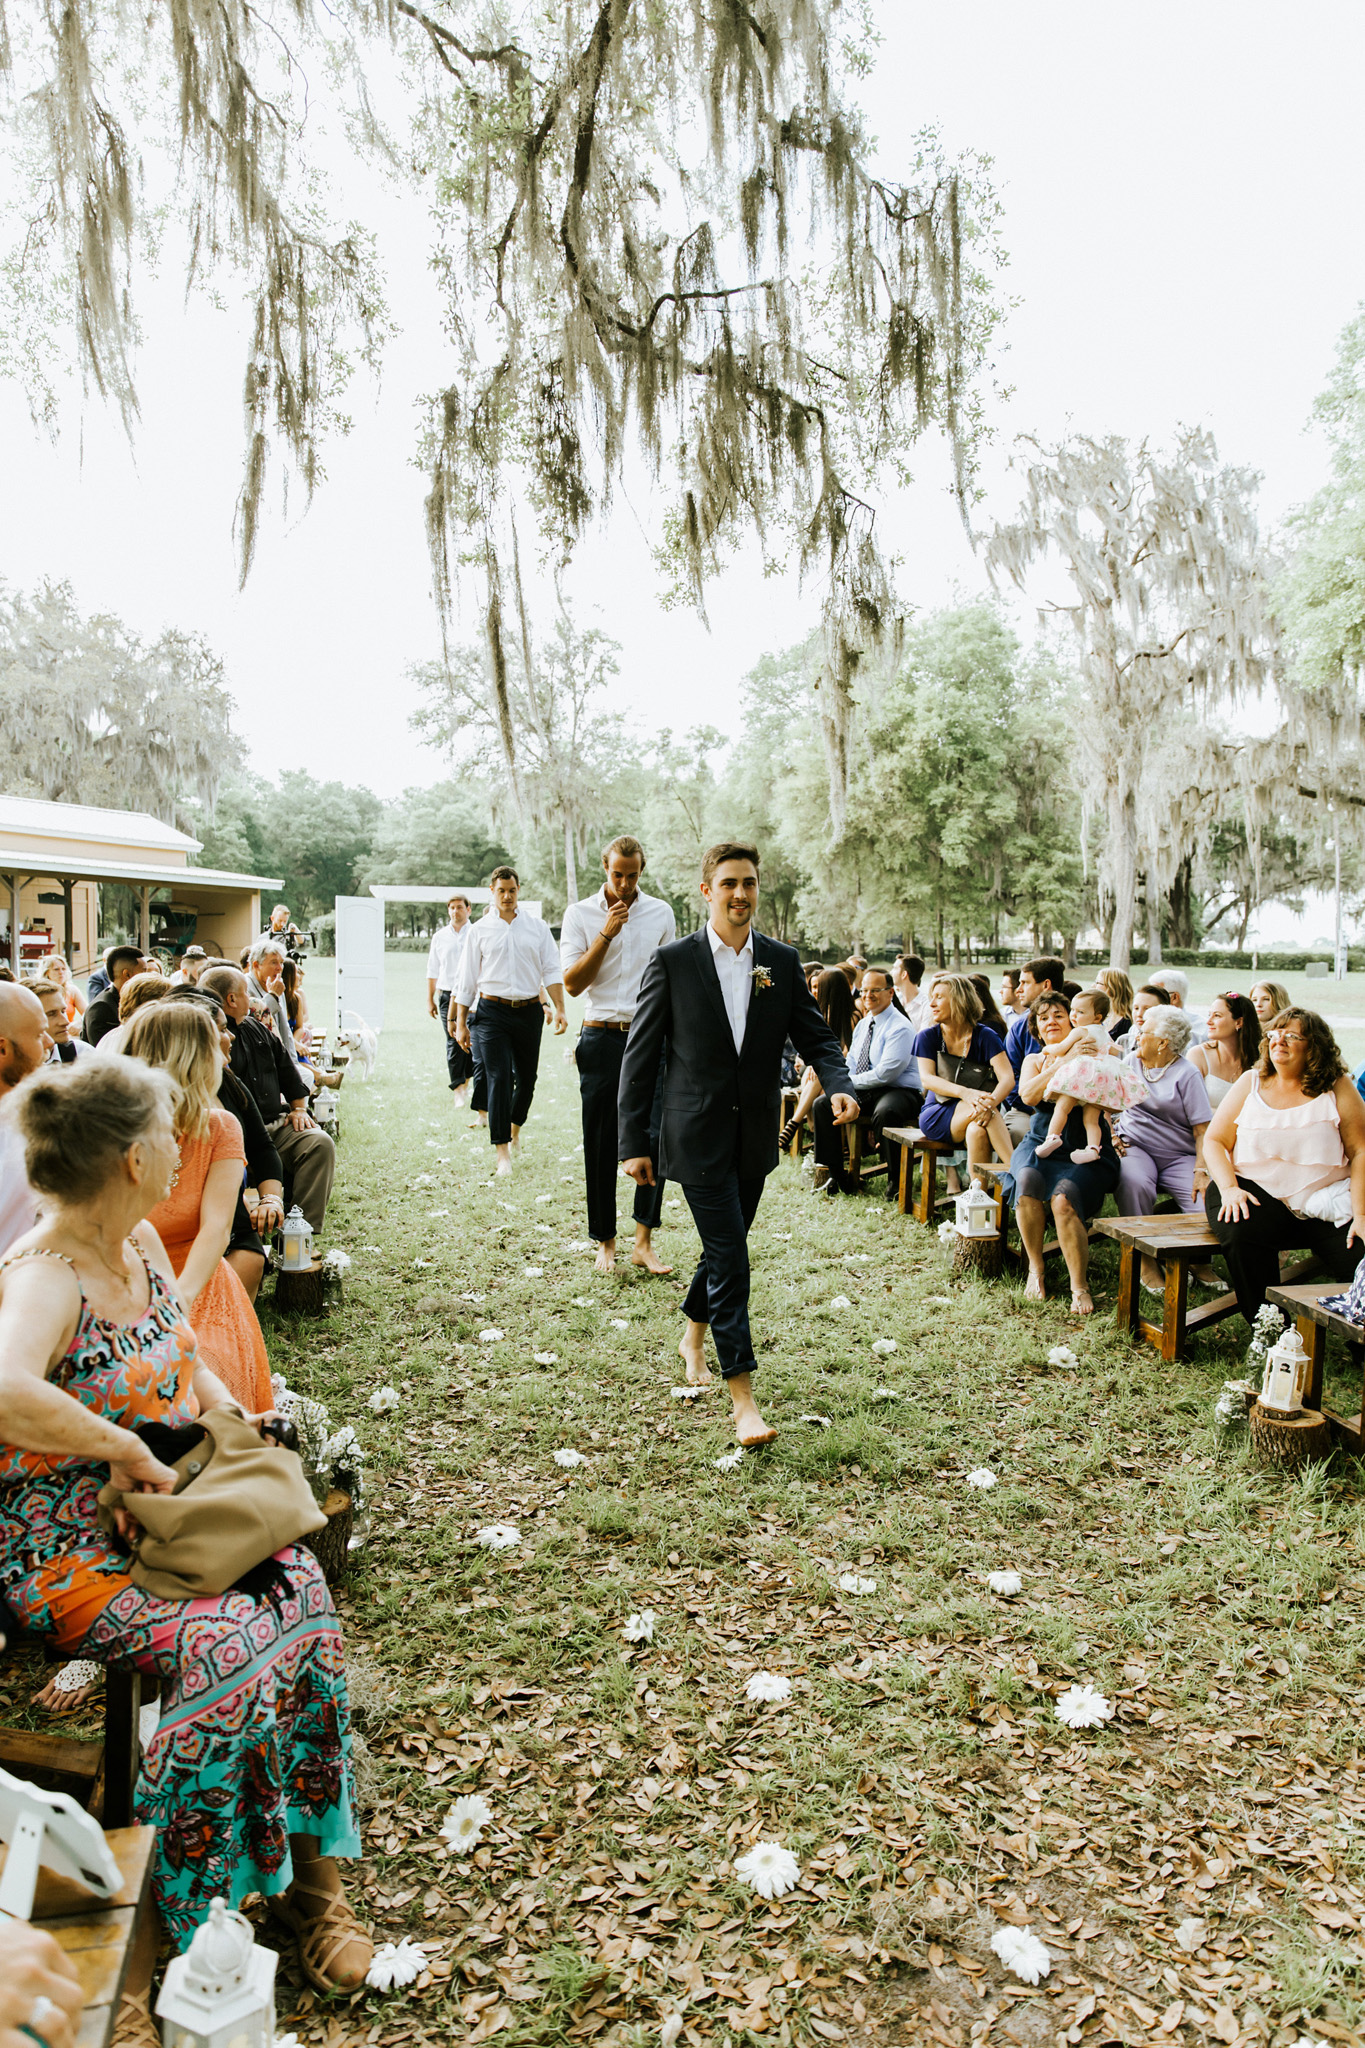 View More: http://theportos.pass.us/zacshannonwedding